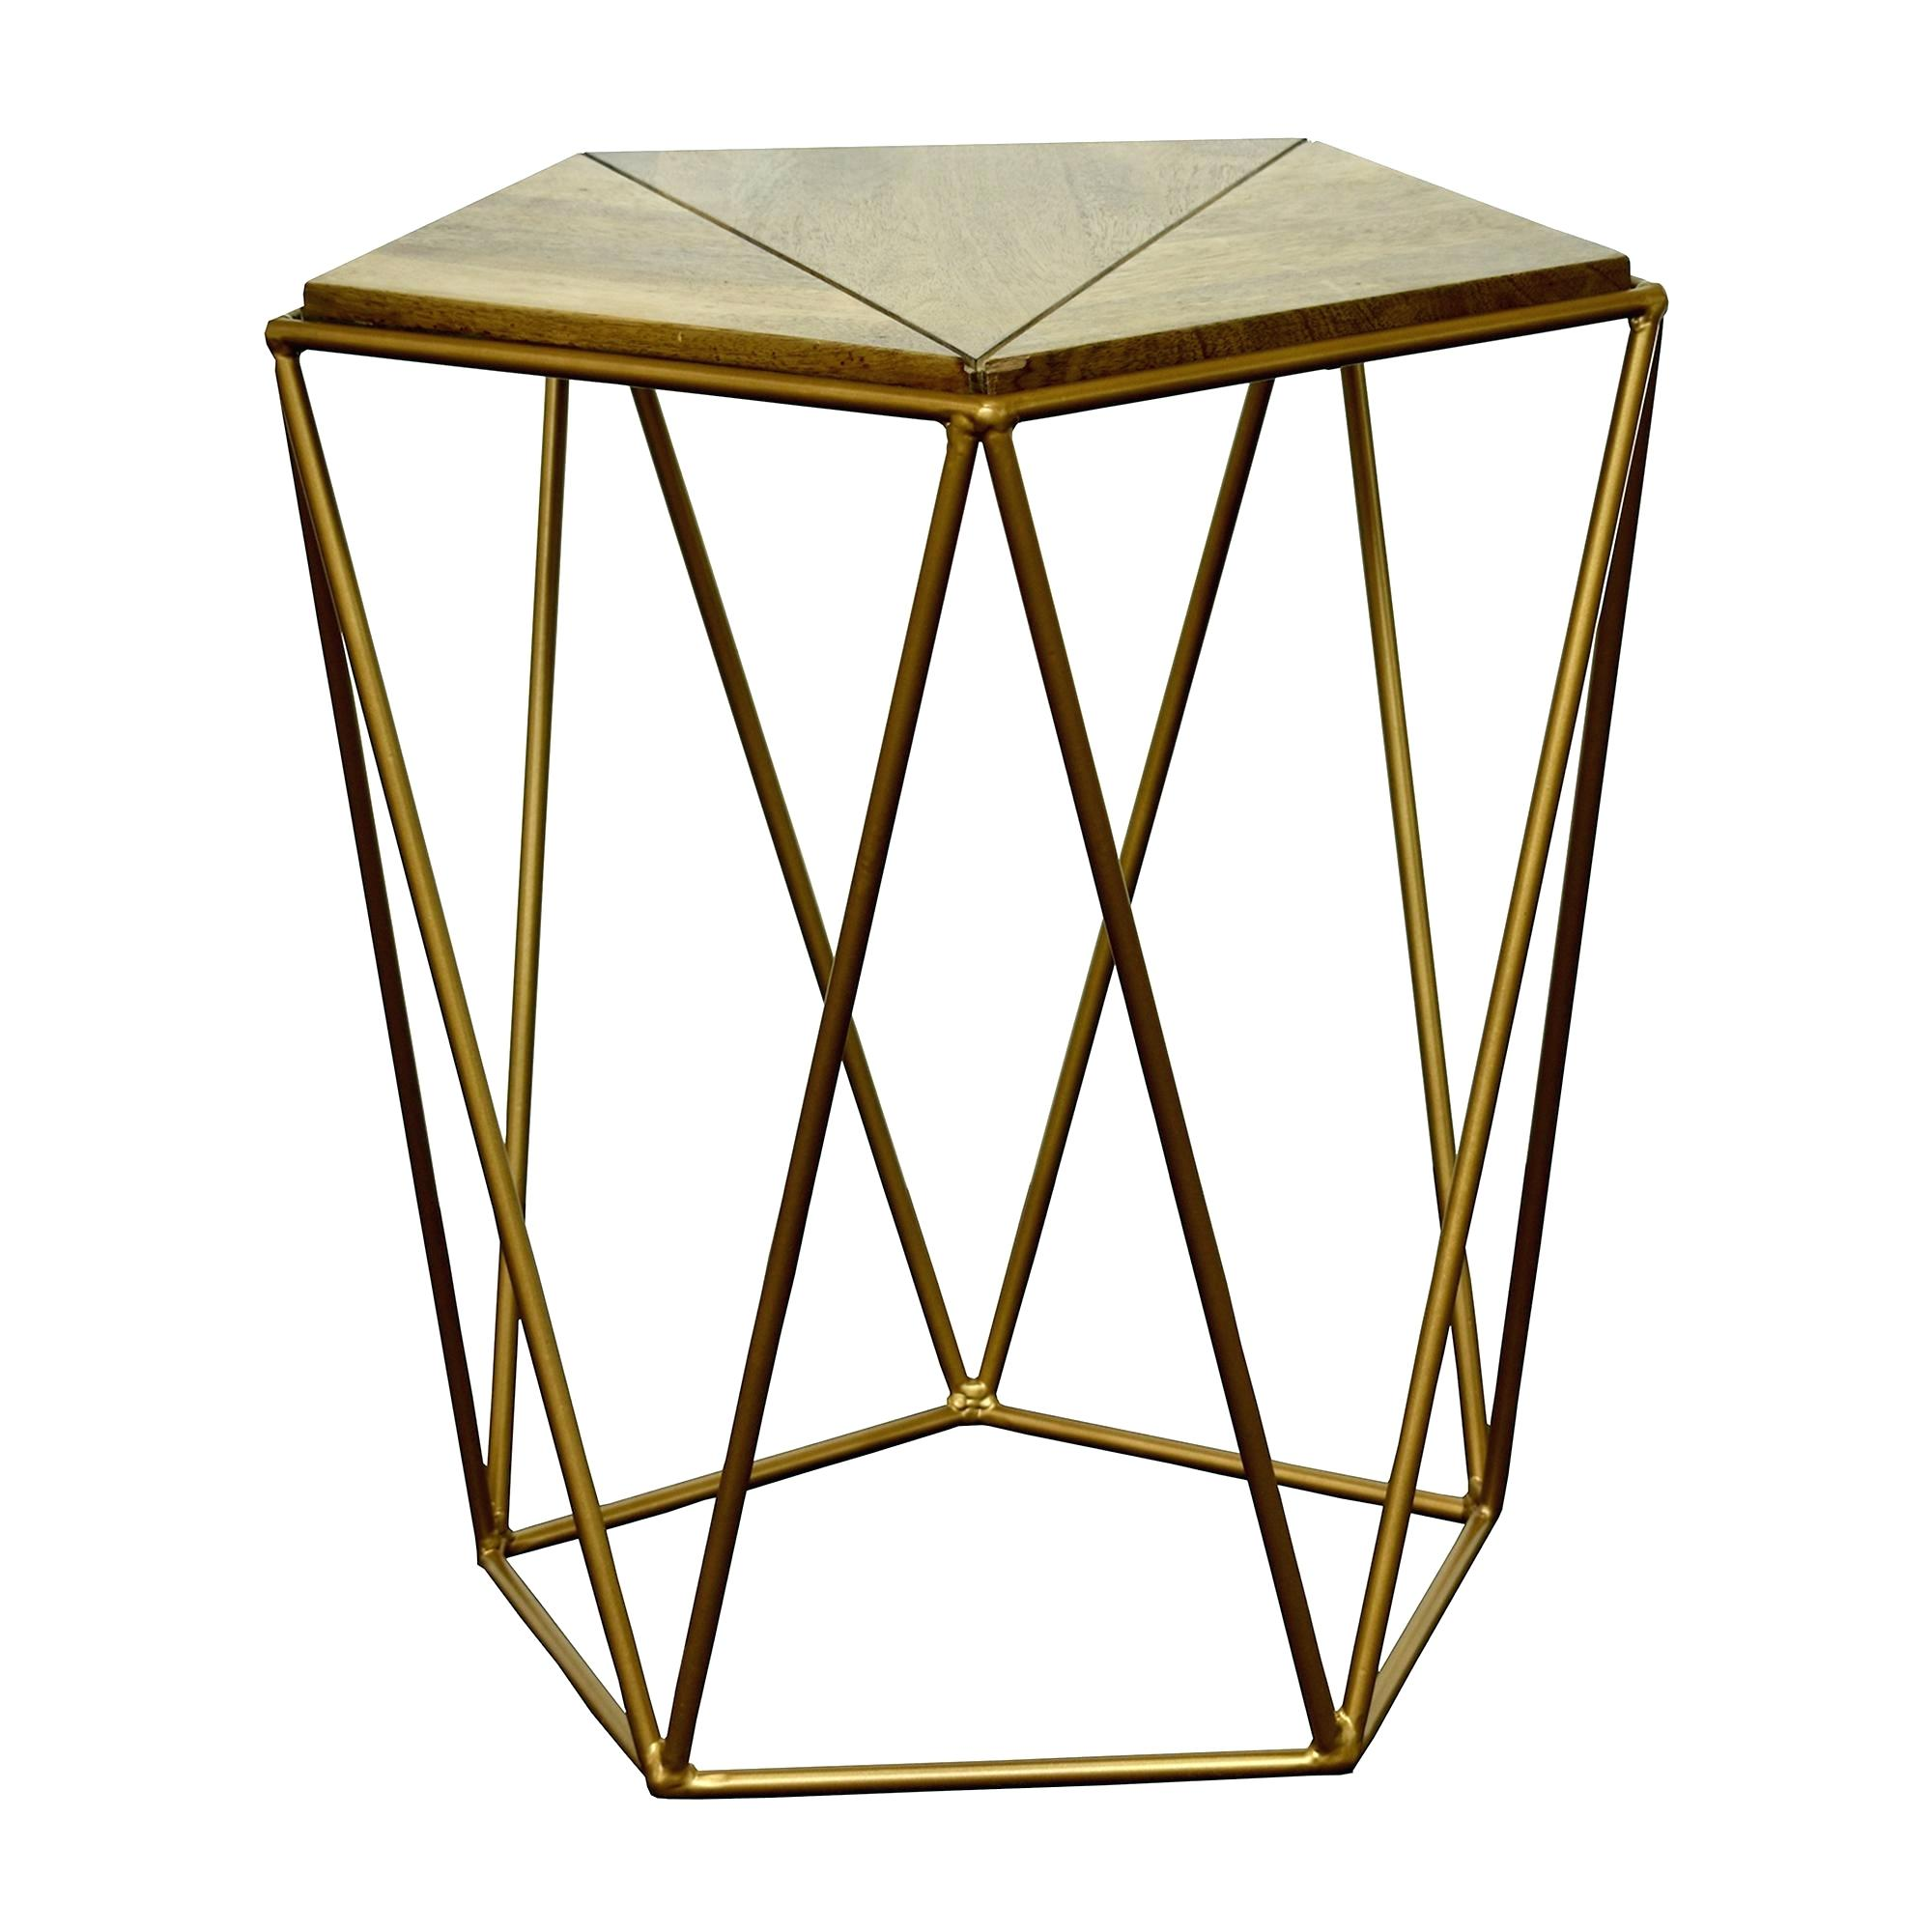 worldwide home furnishings wood accent table reclaimed viventy charter rustic tables avani mango drum antique couch large gazebo copper marble side small plastic outdoor living